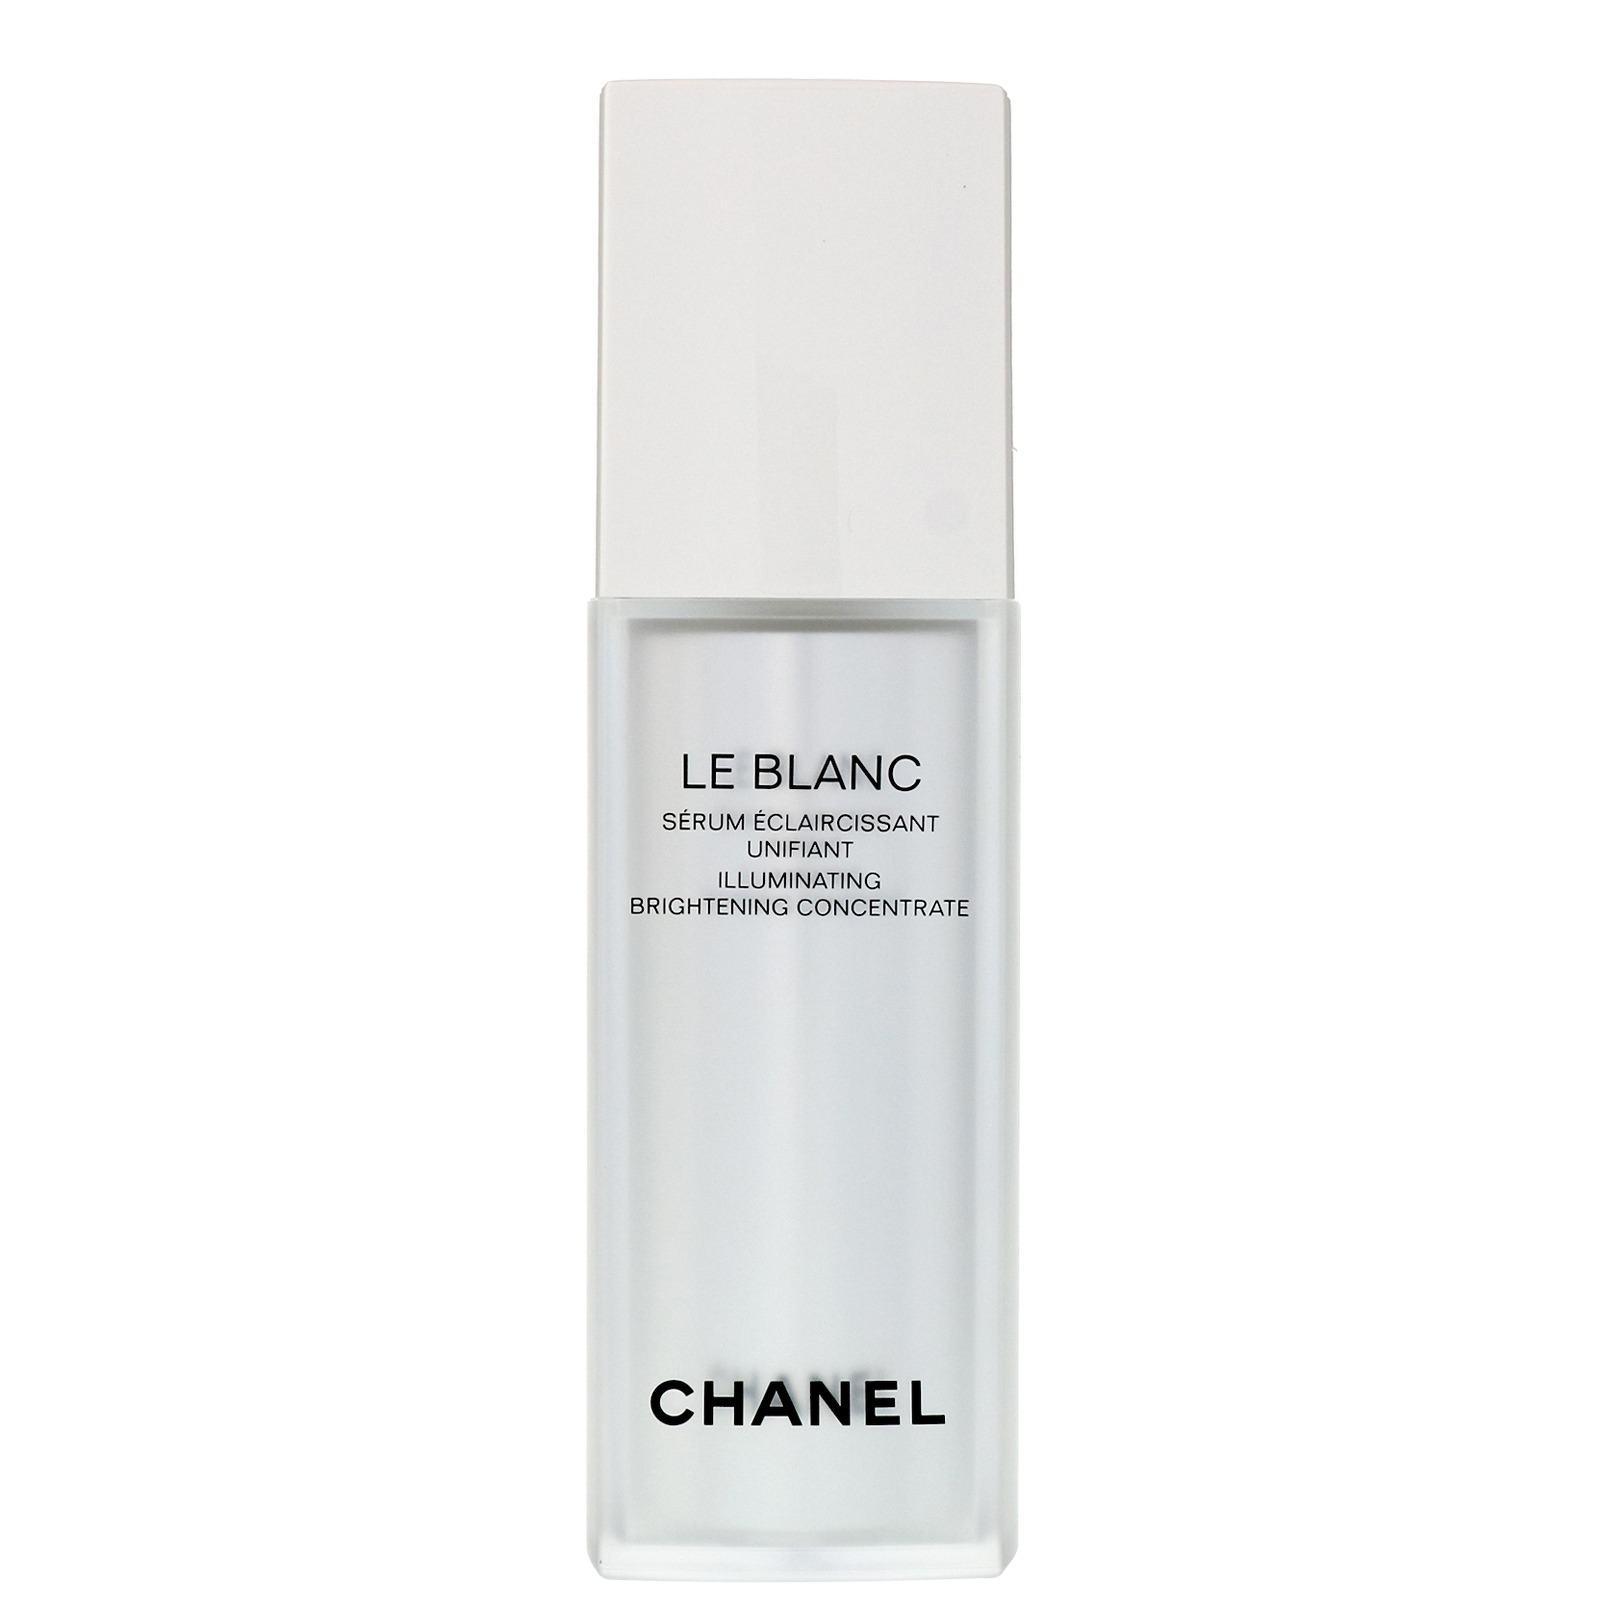 Chanel Serums & Concentrates Chanel Le Blanc Illuminating Brightening Concentrate 30ml